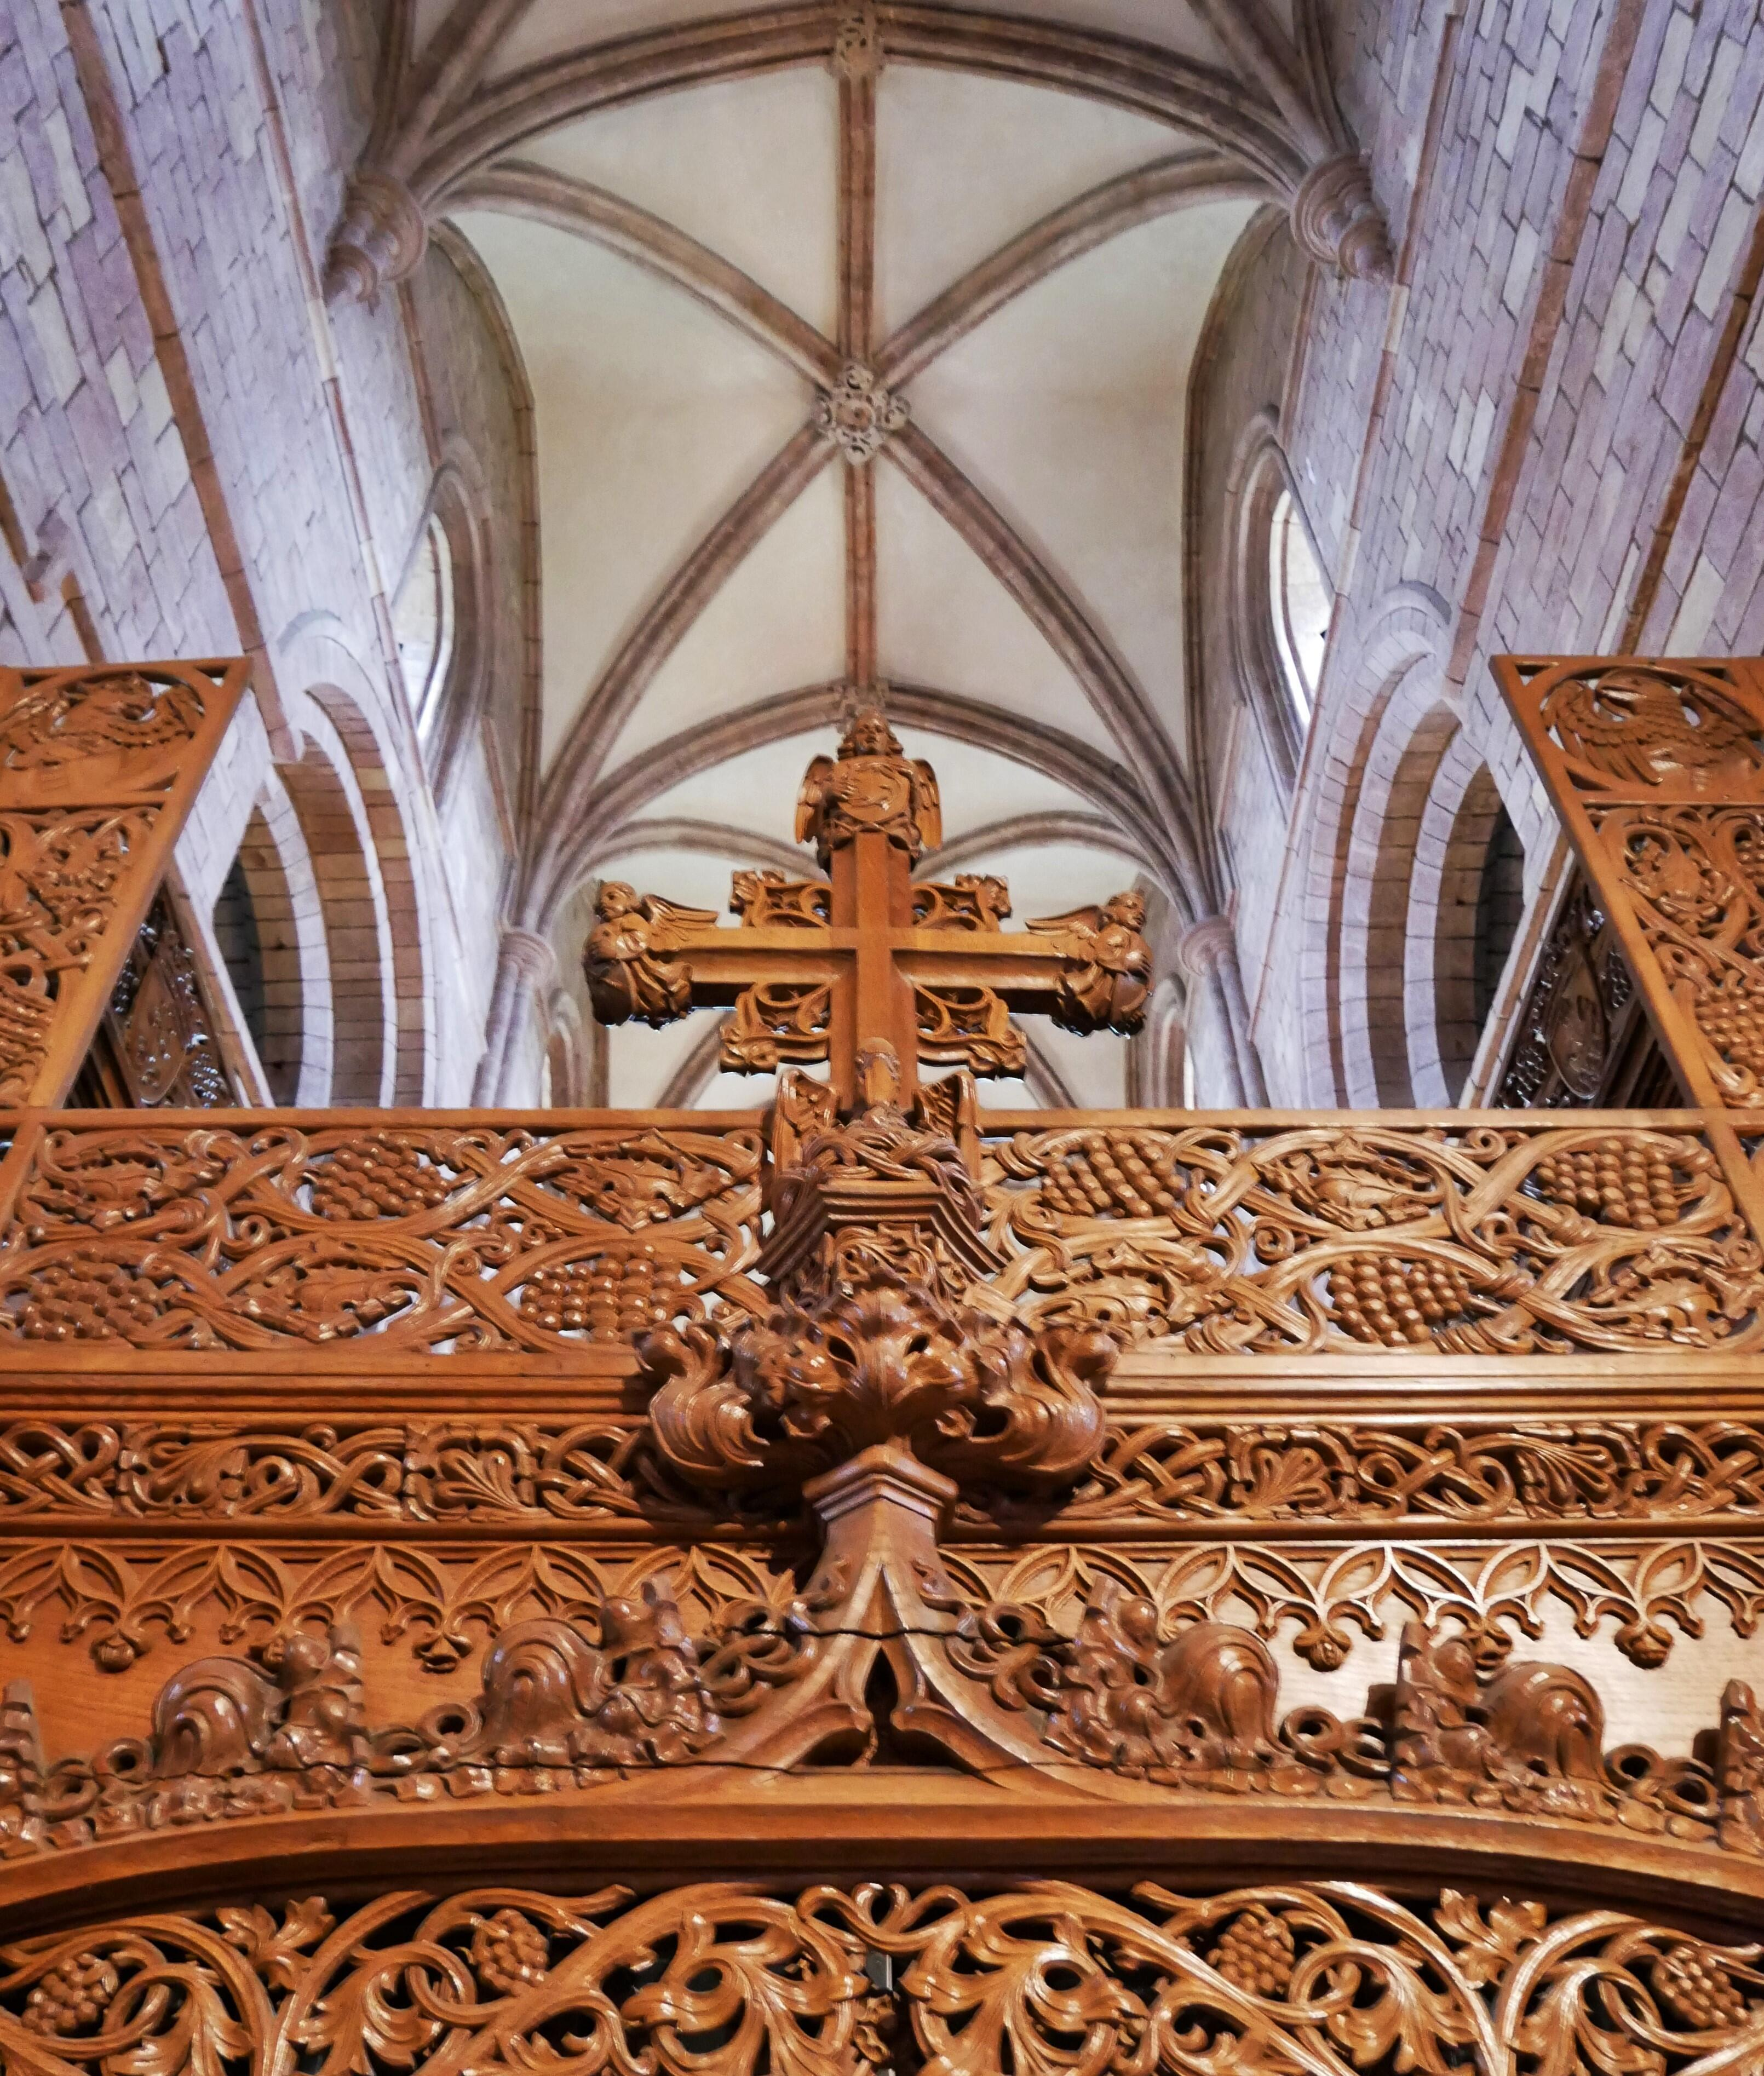 Wooden cross, St Magnus Cathedral, Kirkwall, Orkney Islands, Scotland, UK